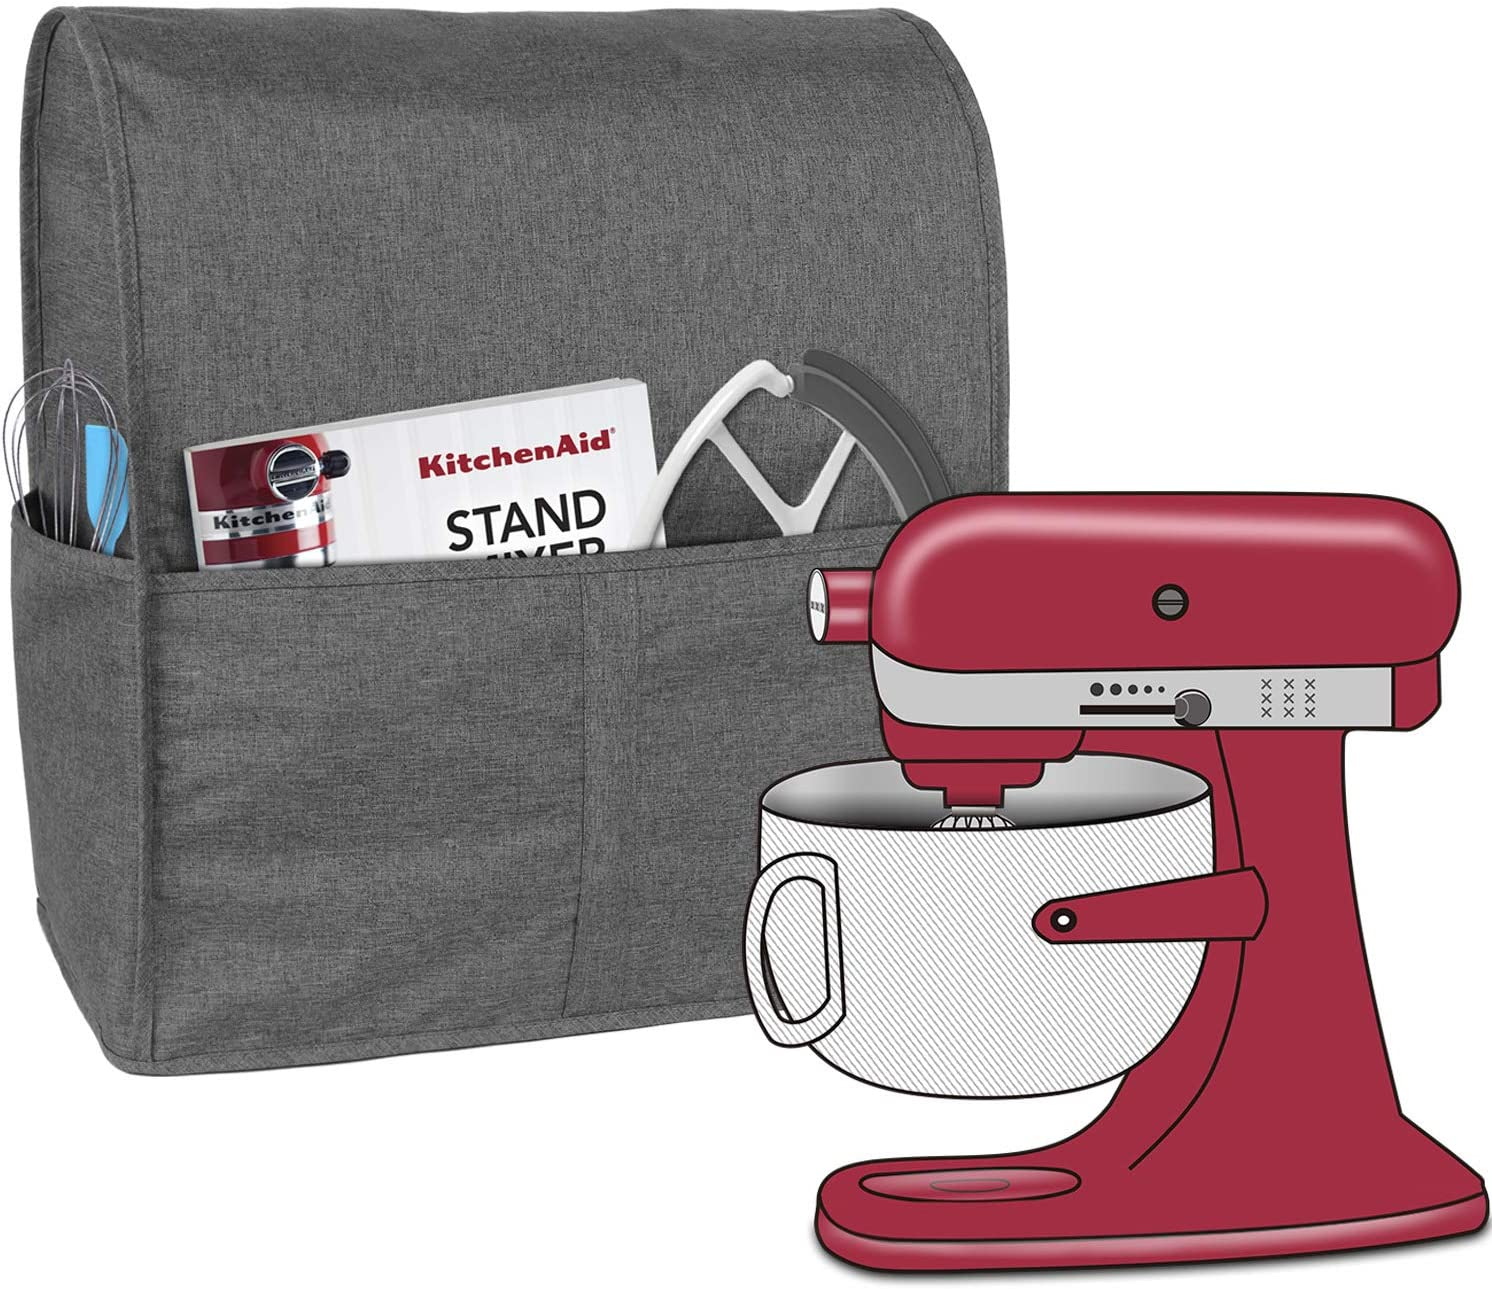 Homai Stand Mixer Cover for 6-8 Quart KitchenAid Mixer, Cloth Dust Cover with Pocket for Extra Attachments (Gray)